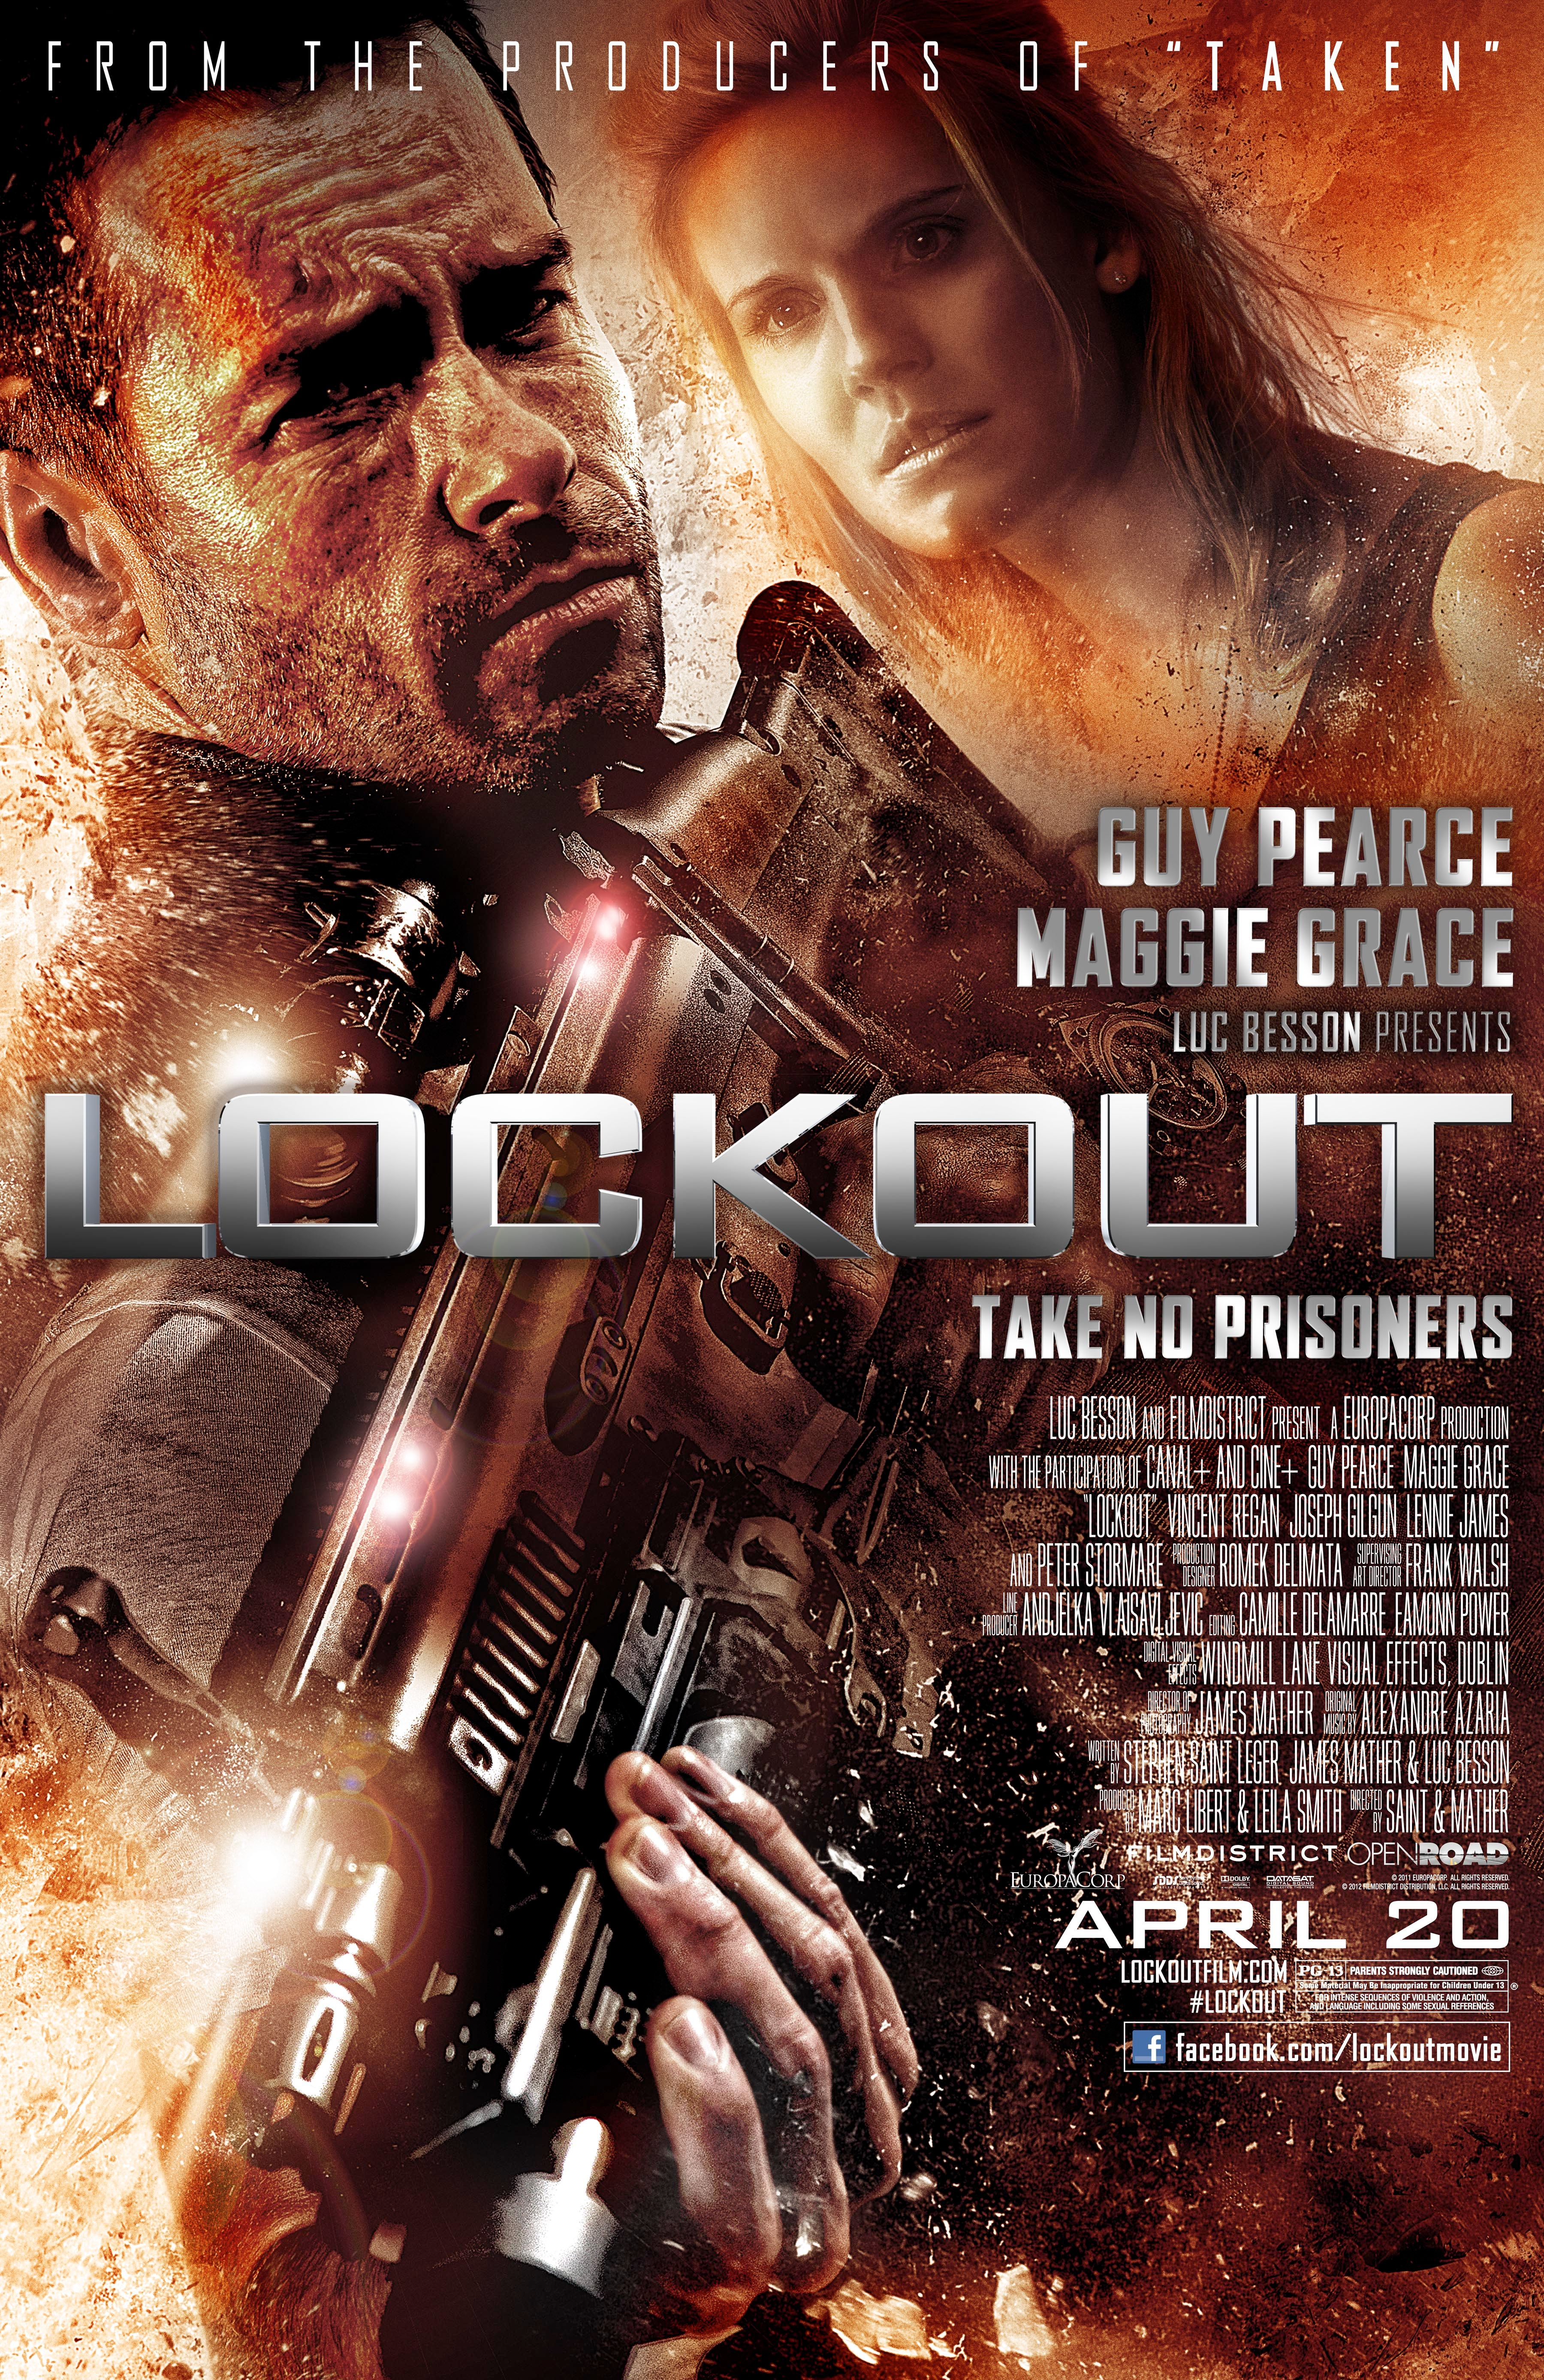 LOCKOUT, MIRROR MIRROR, and MARLEY Movie Posters | Collider